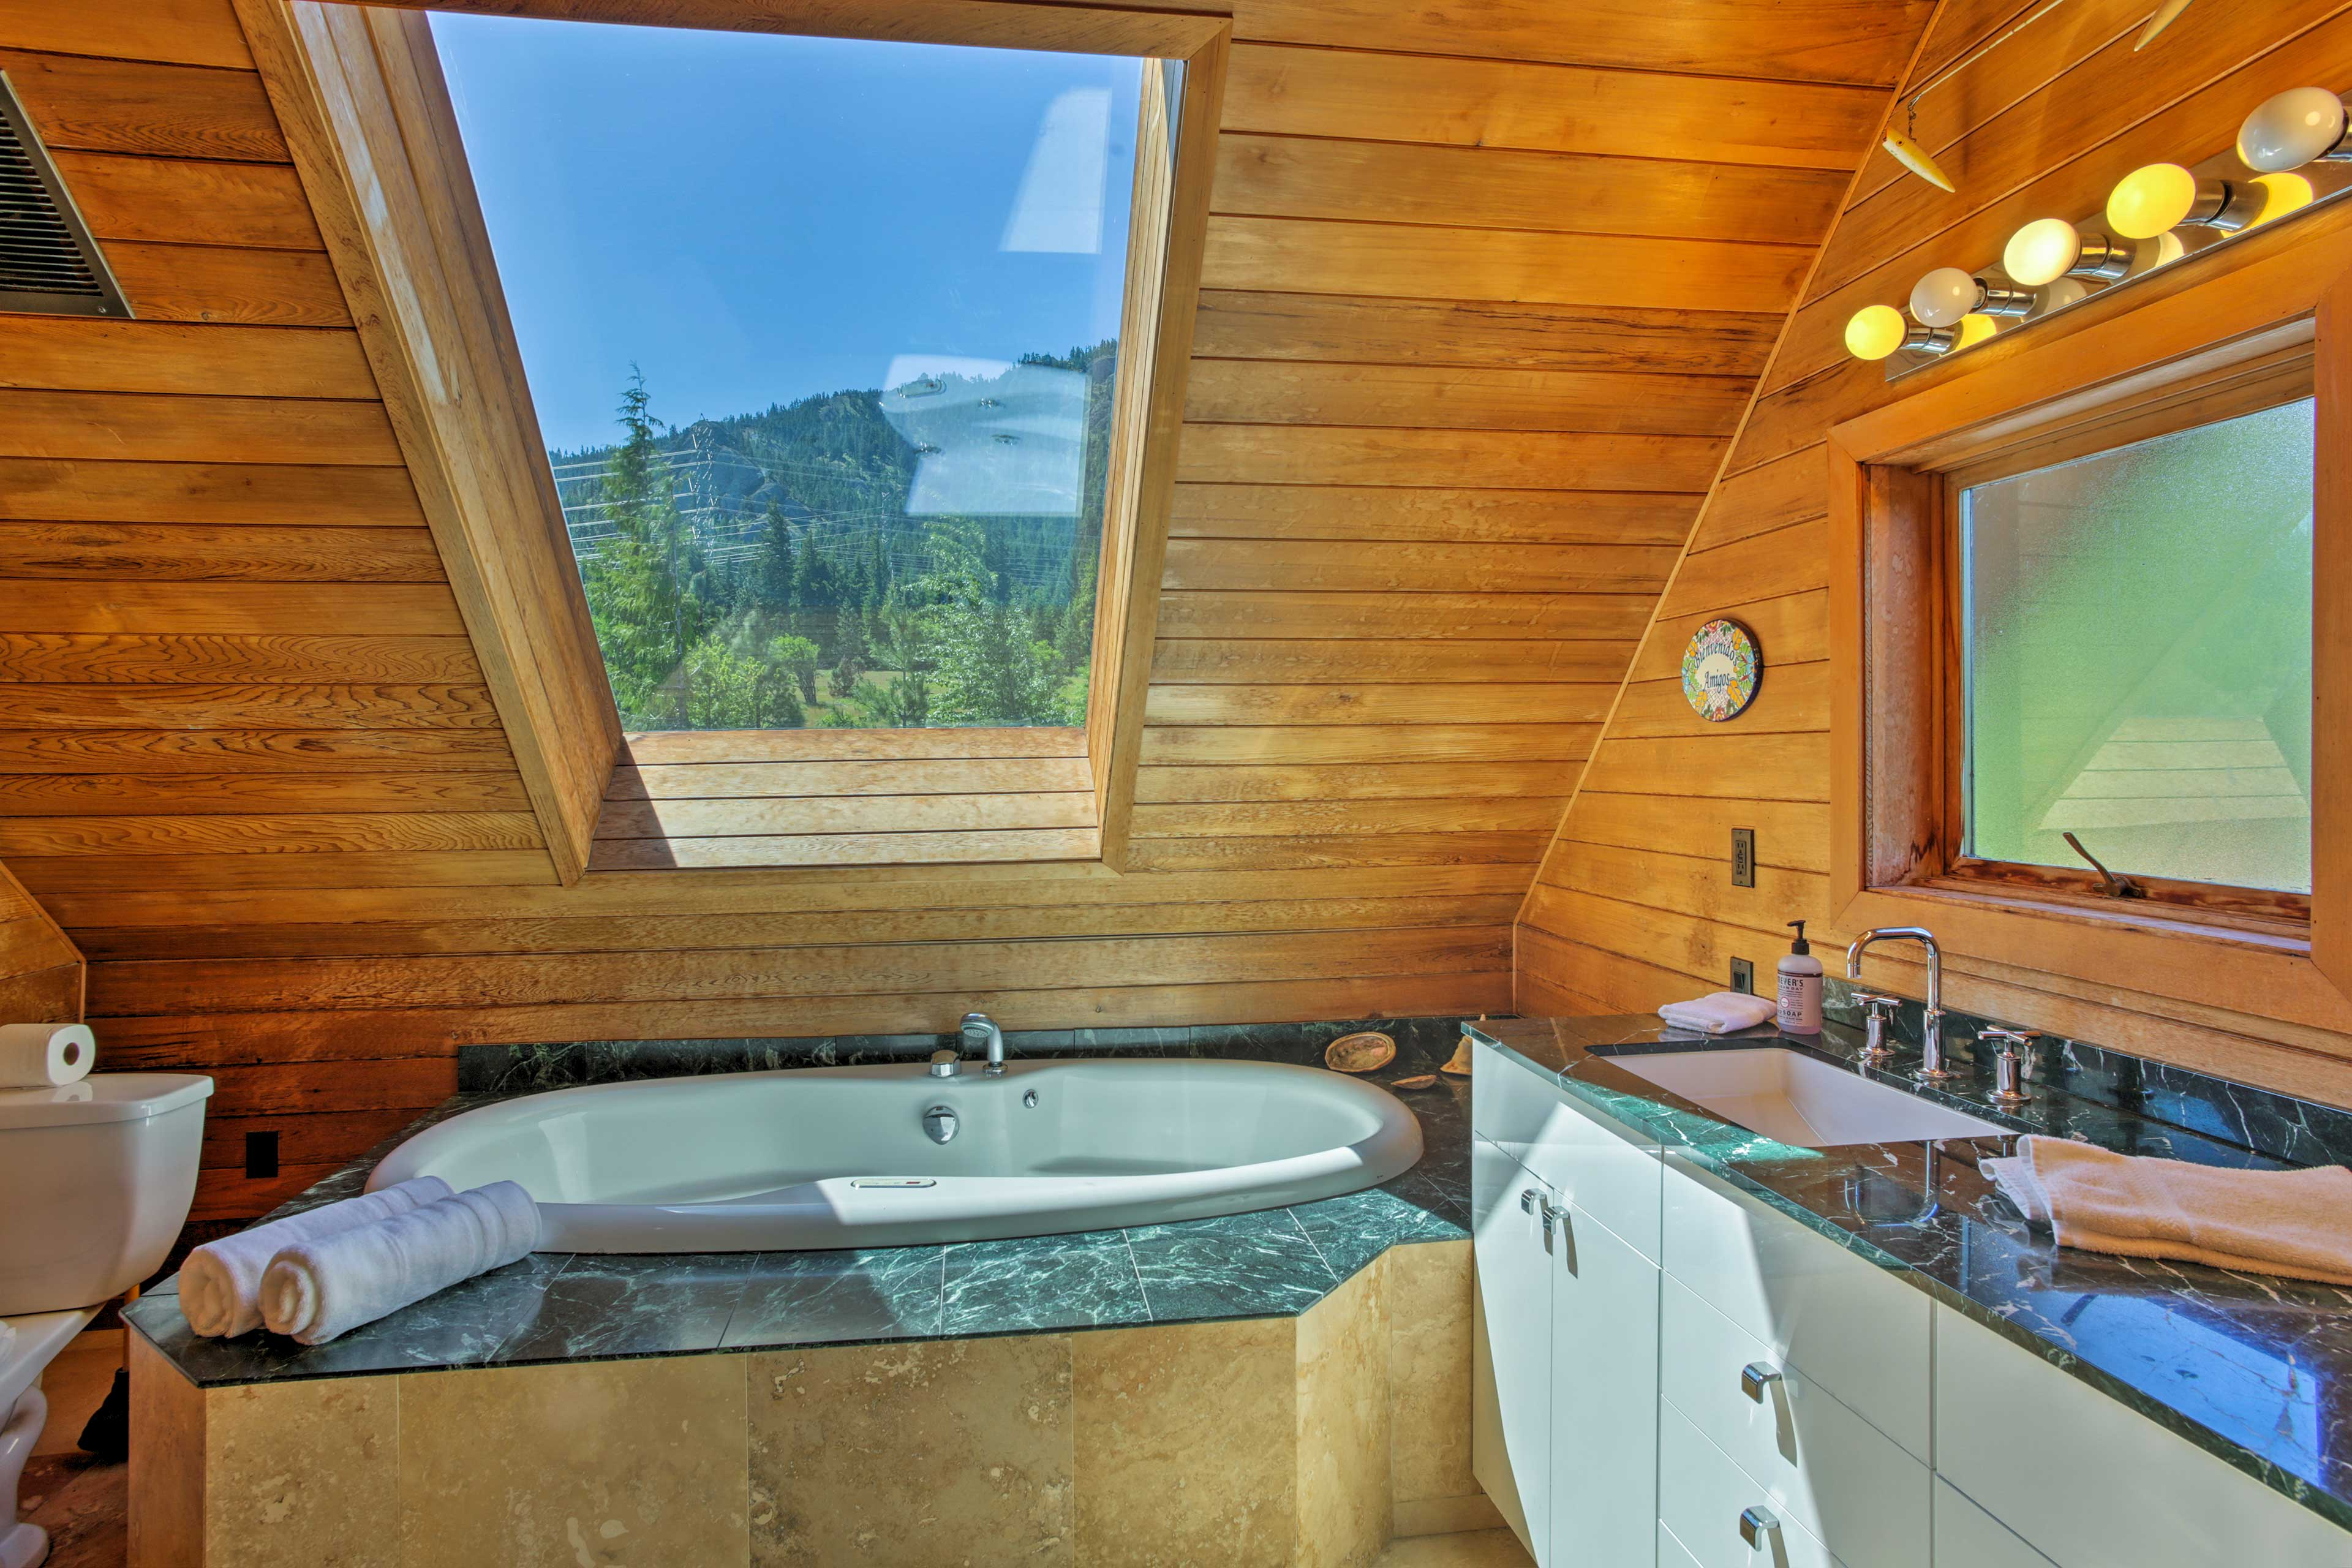 The bathroom has a sunken tub with a skylight letting in sunshine and views.